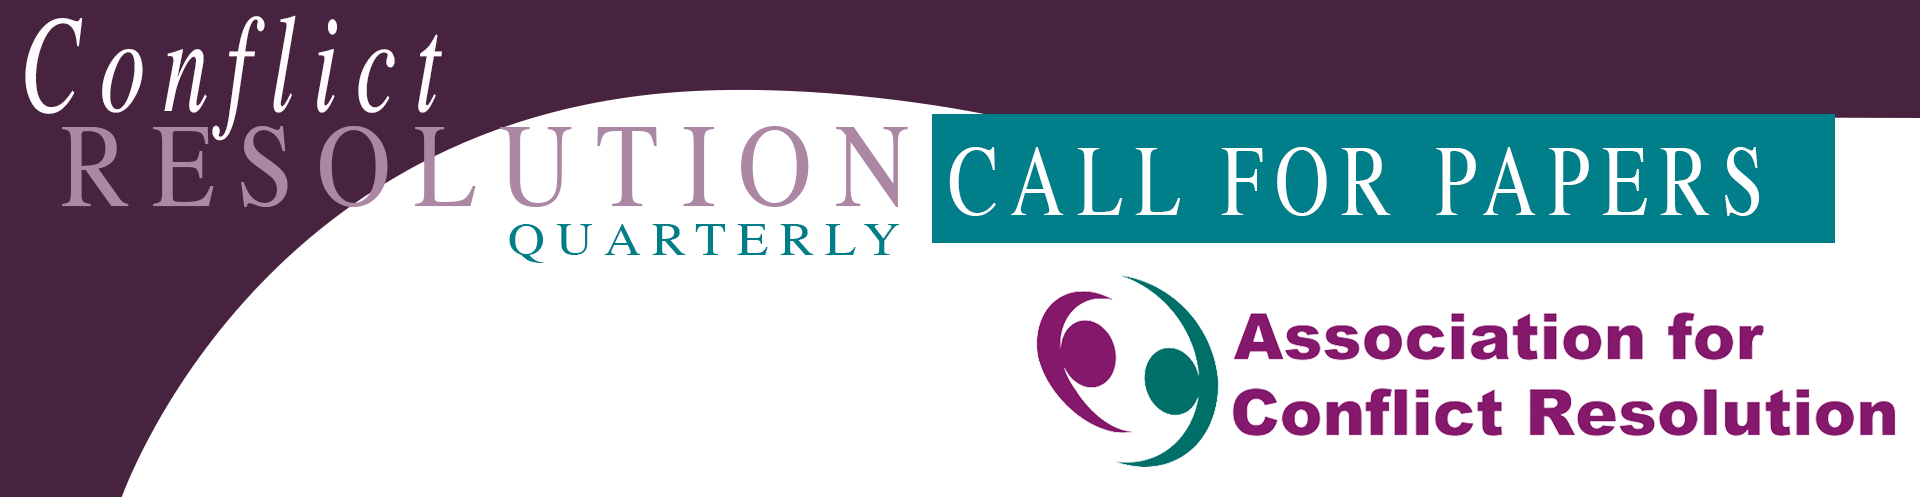 TWO Call for Papers: Conflict Resolution Quarterly